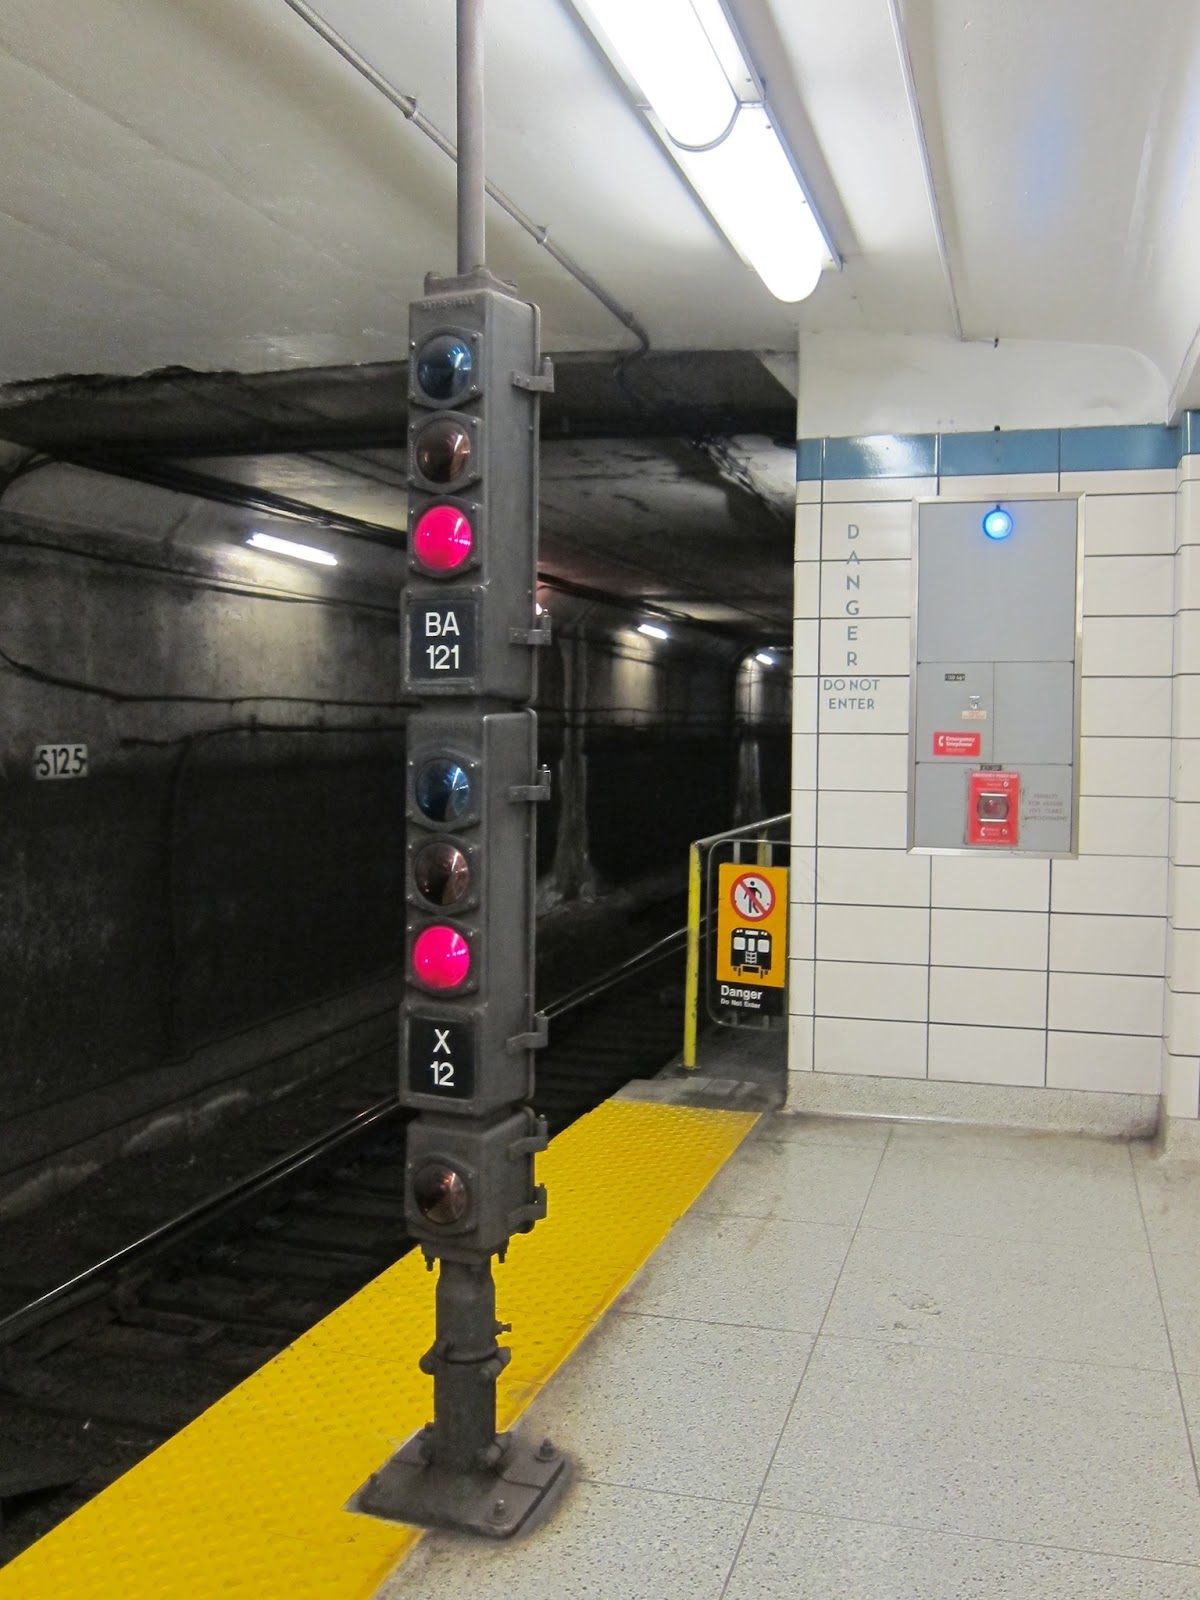 Subway signal at Islington station platform